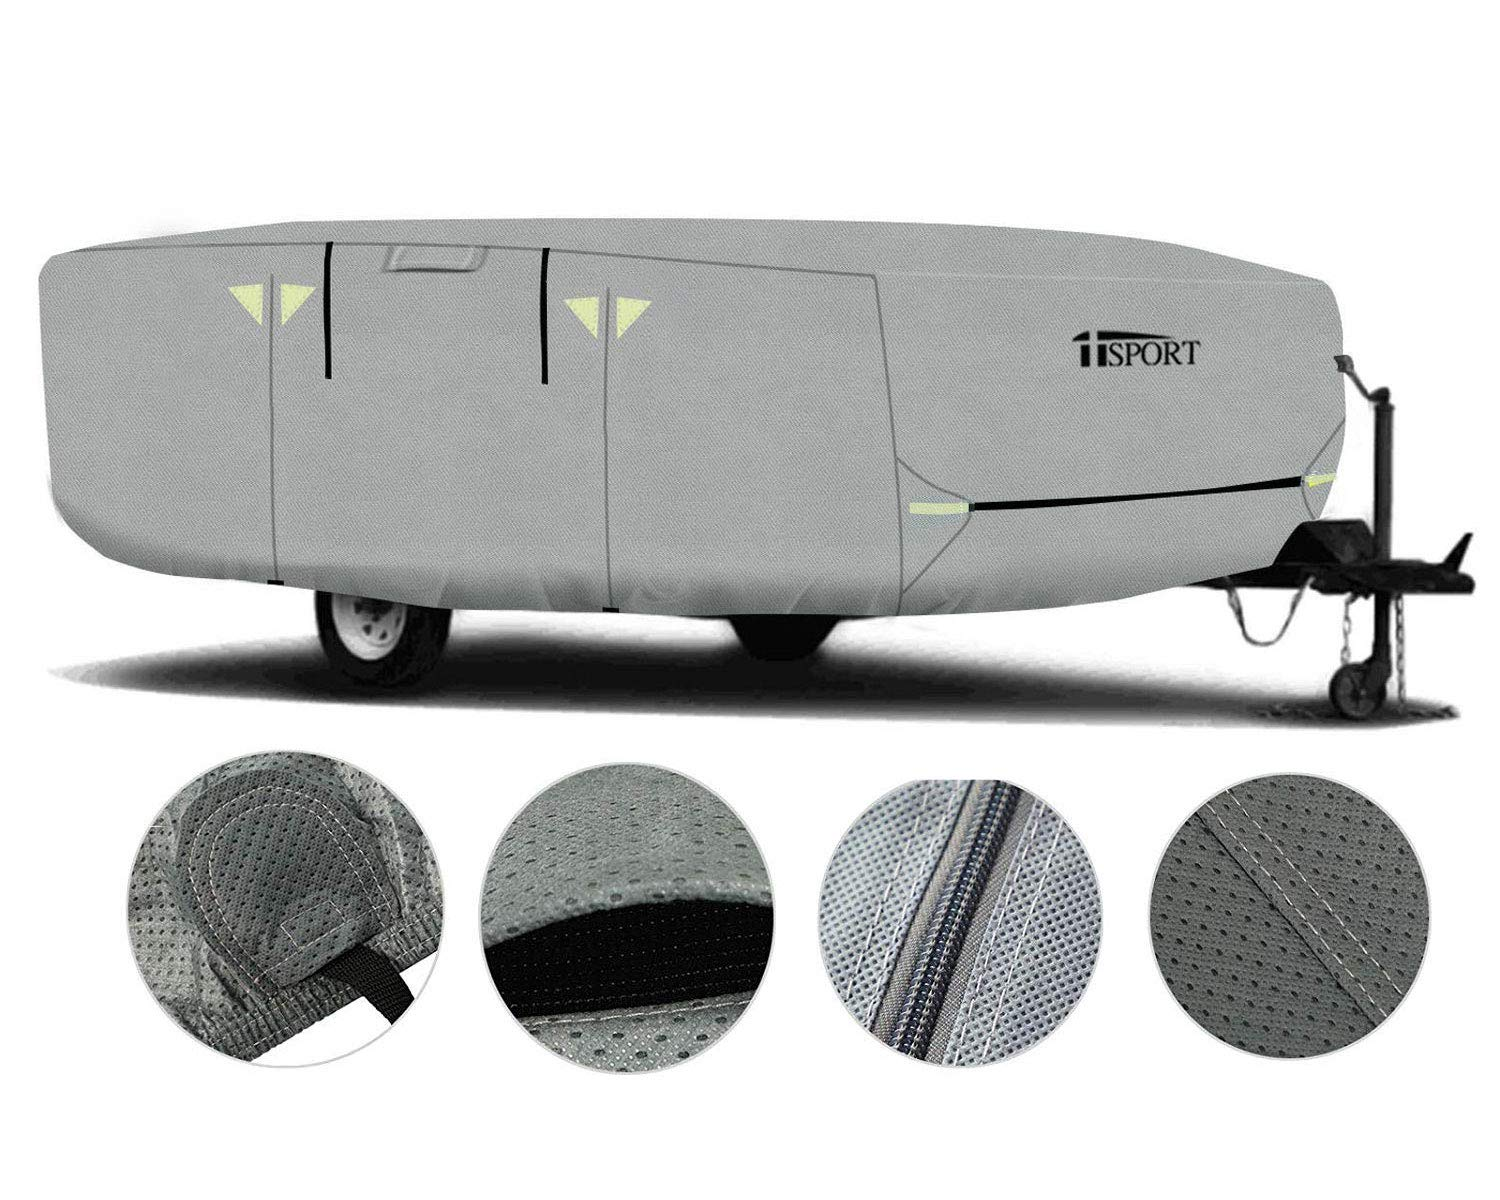 Heavy Duty Weatherproof RV Storage Cover with 4-Ply Poly Fabric Roof iiSPORT Water-Repellent Pop Up Folding Camper RV Cover Fits 12-14ft Long Trailers